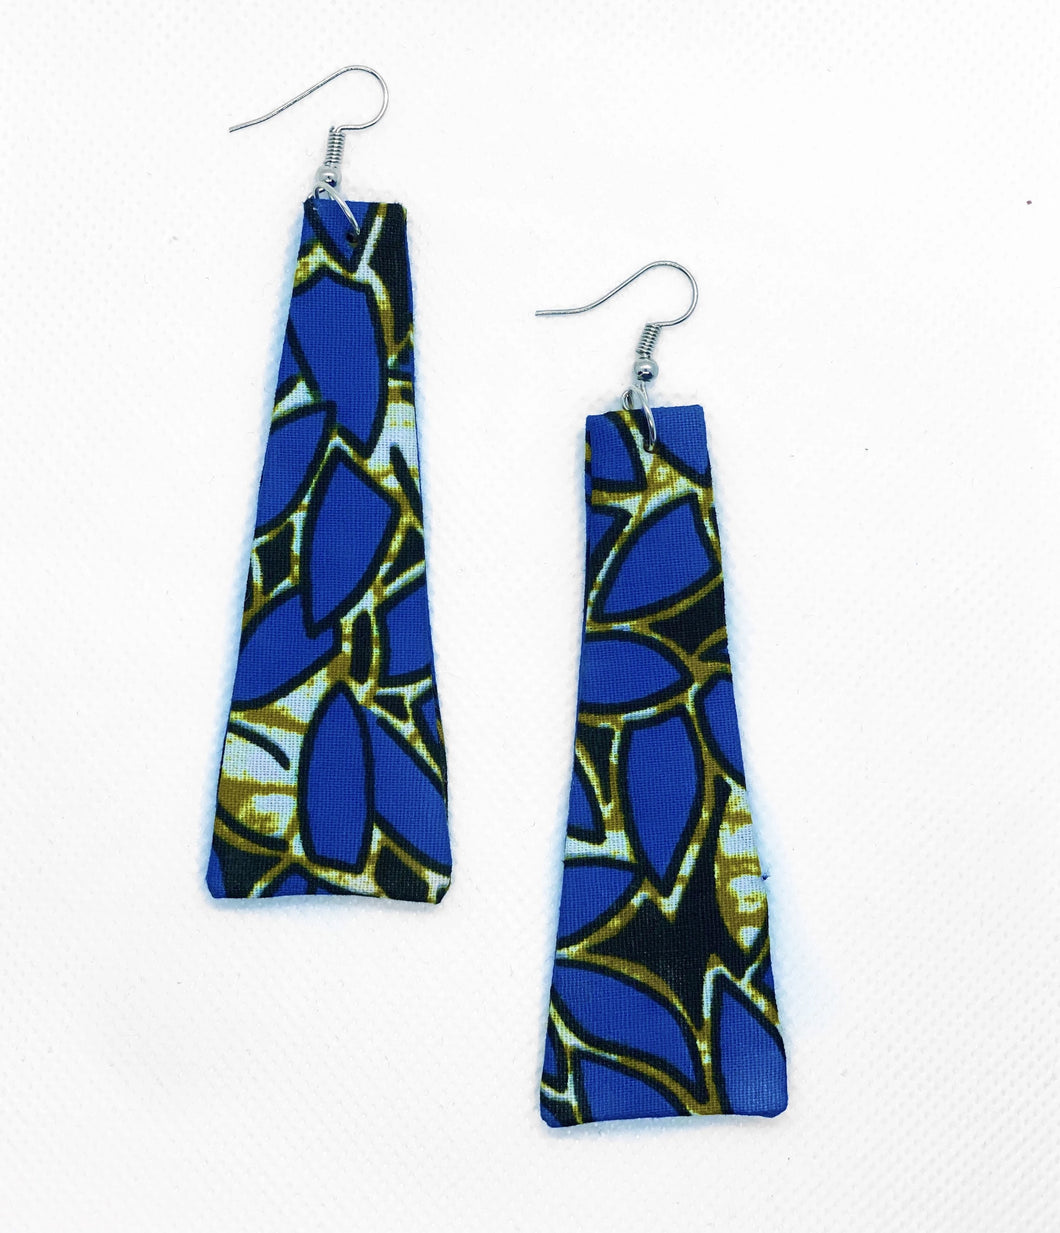 Minimalist and stylish African print earrings